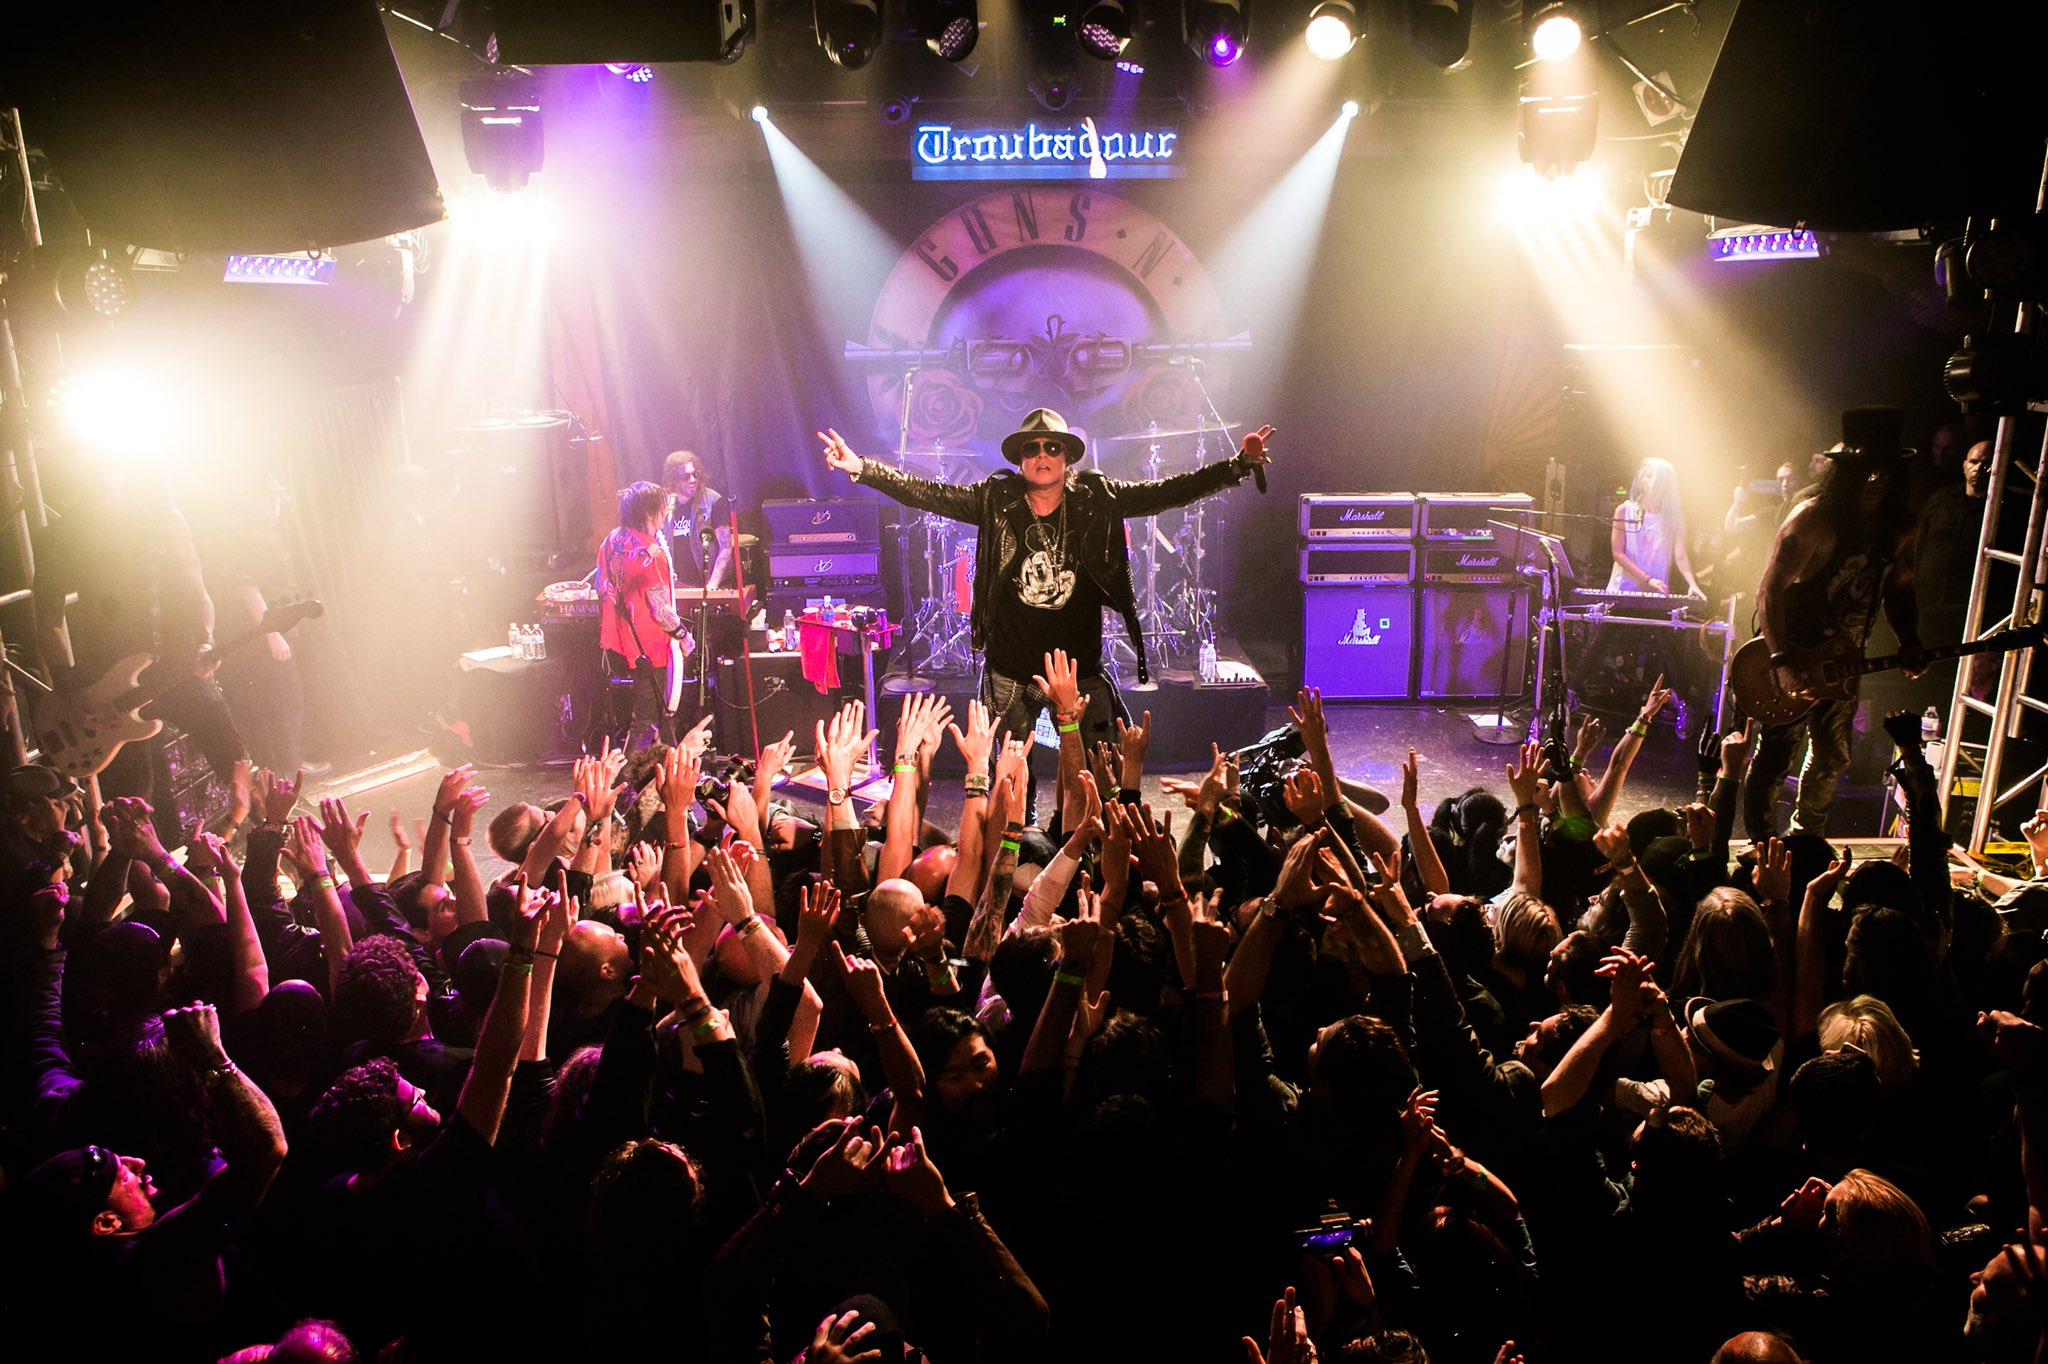 #GnFnR | The Troubadour | #AprilFoolsDay | 2016 https://t.co/s9CeWCMAGE